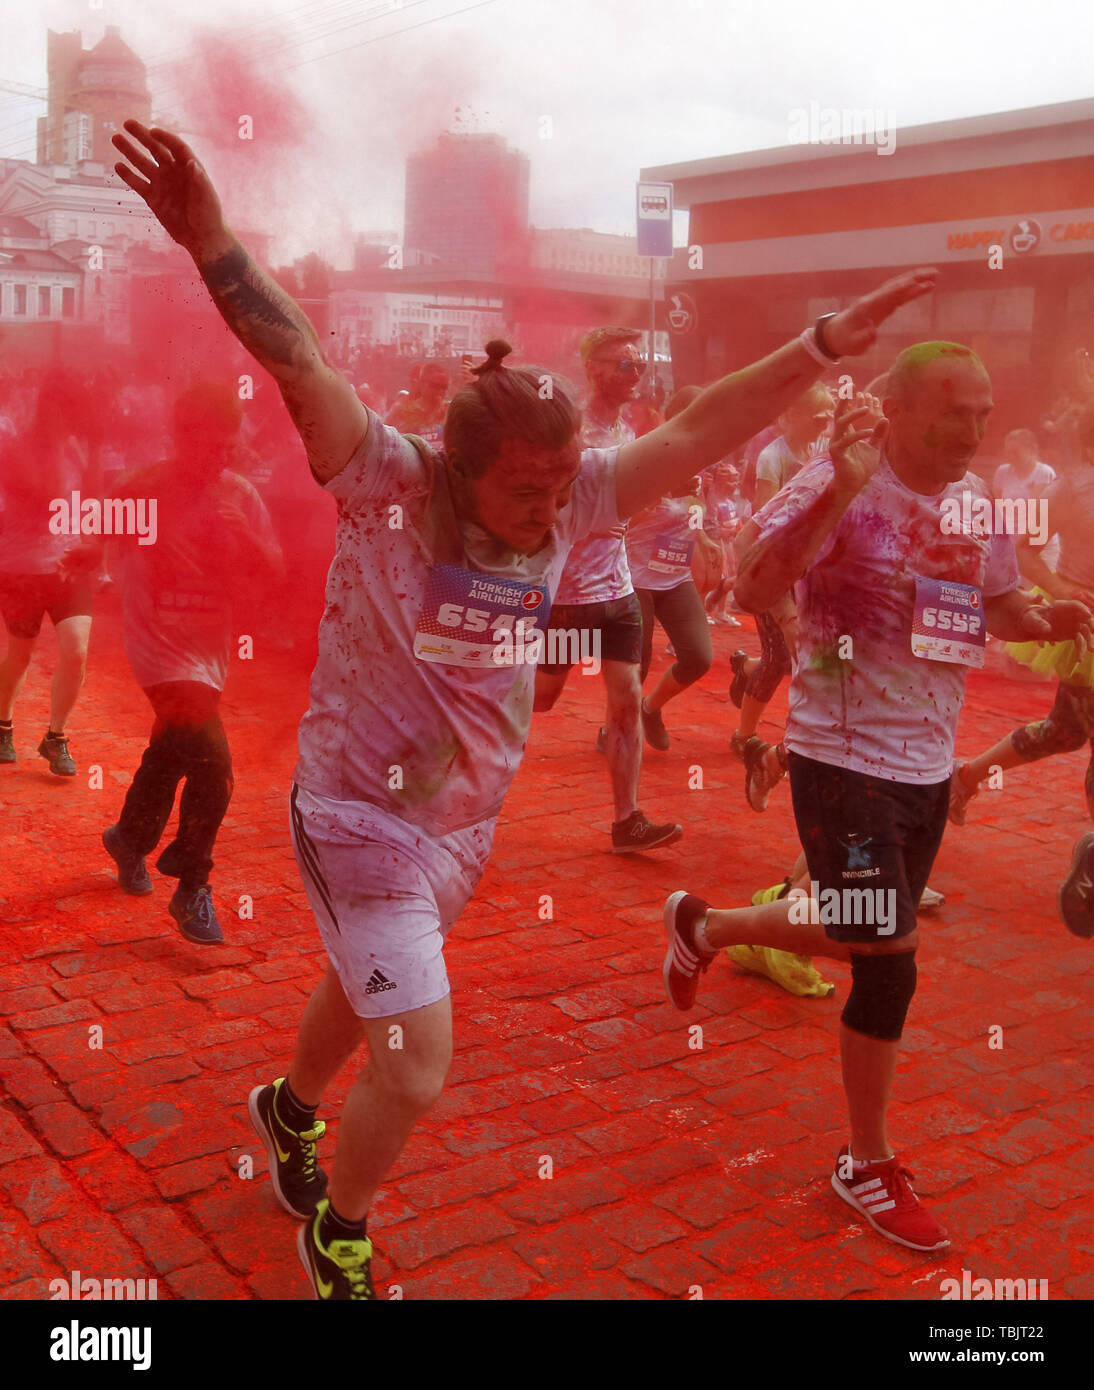 Kiev, Ukraine. 2nd June, 2019. Participants take part in the 2019 Kiev Color Run. From the first event in the United States in January 2012 the Color Run has since spread across the globe leaving a trail of color and happy runners. Credit: Serg Glovny/ZUMA Wire/Alamy Live News - Stock Image